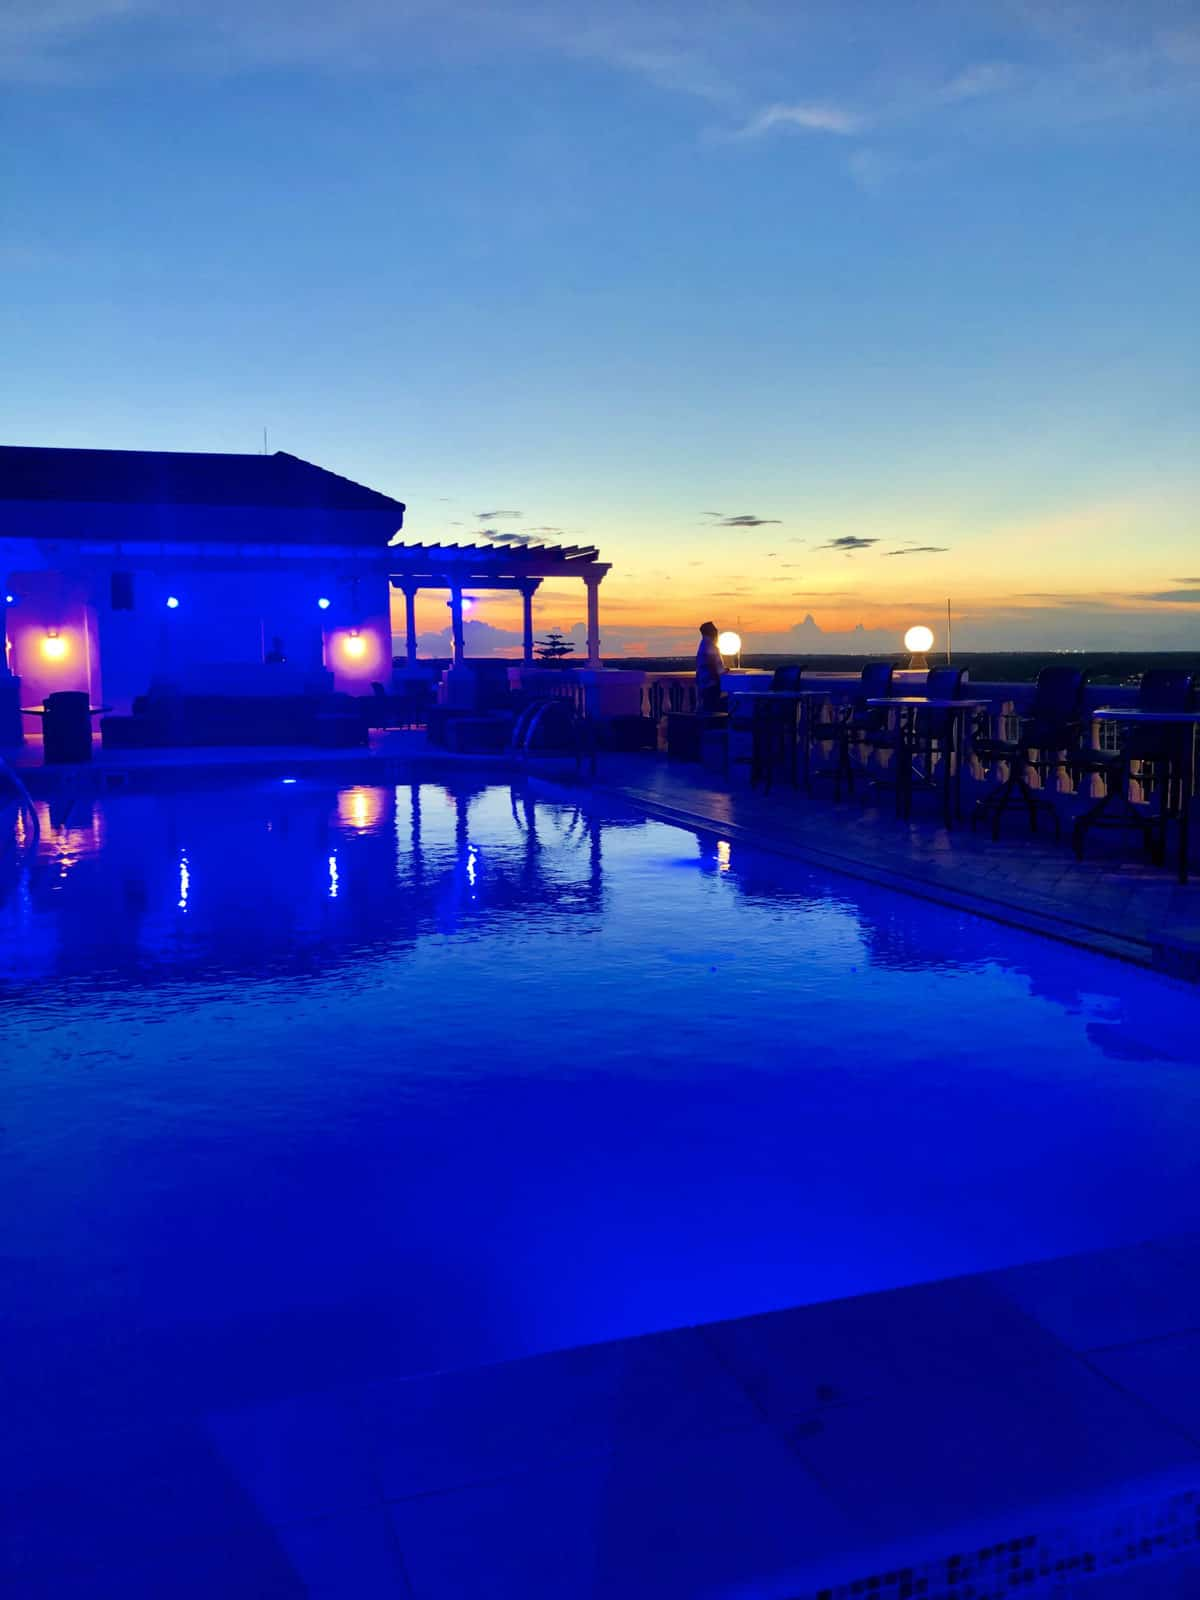 Blue filtered pool and pool house with patio seating during sunset.